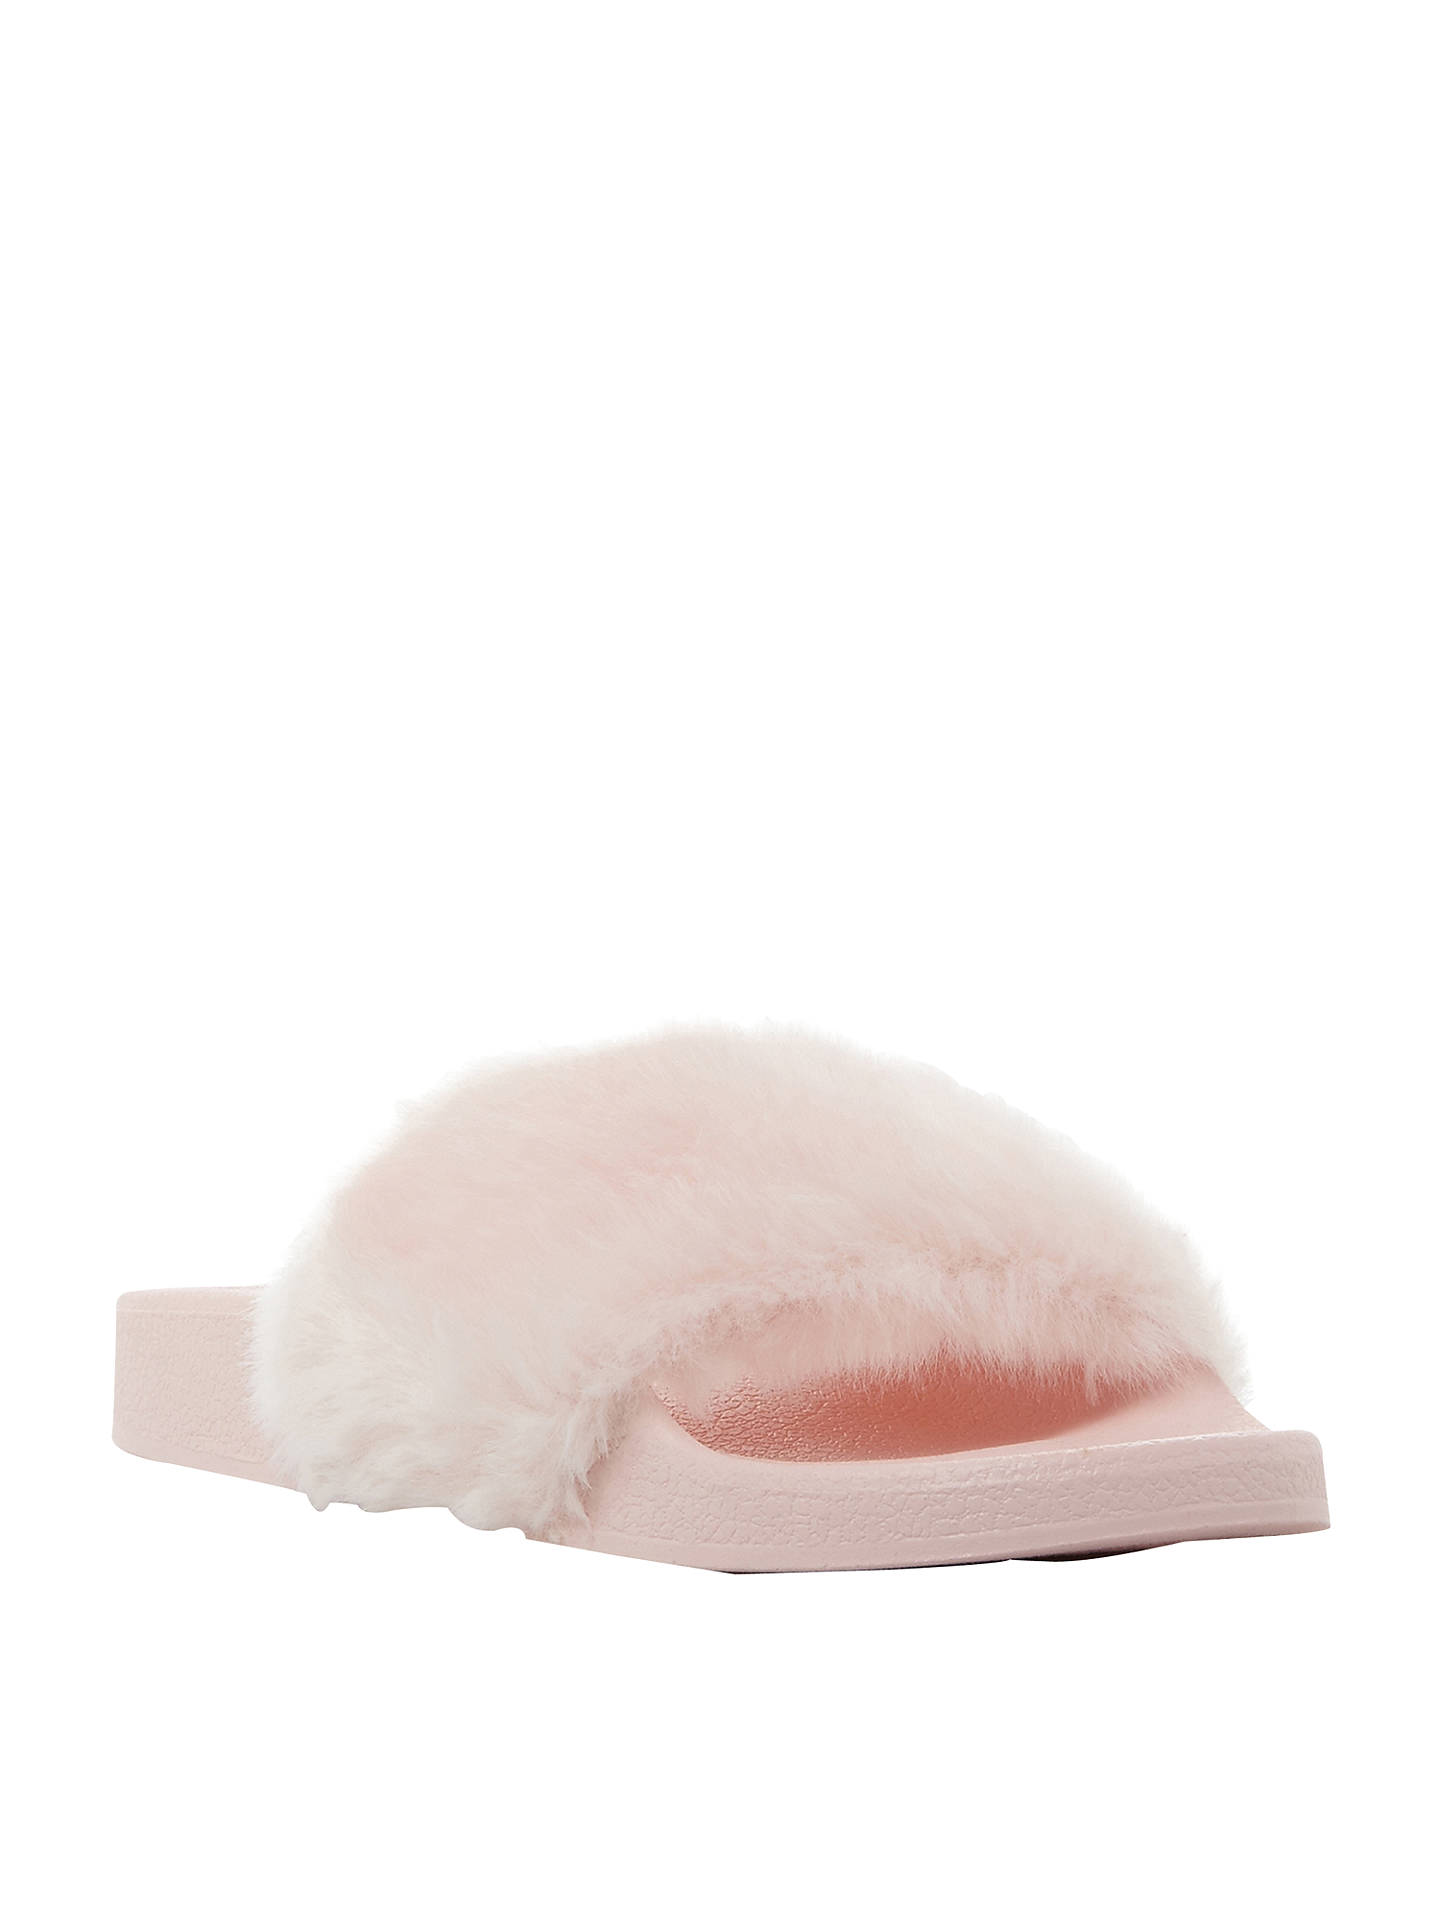 12ab076a66a Steve Madden Softey Faux Fur Sandals at John Lewis   Partners